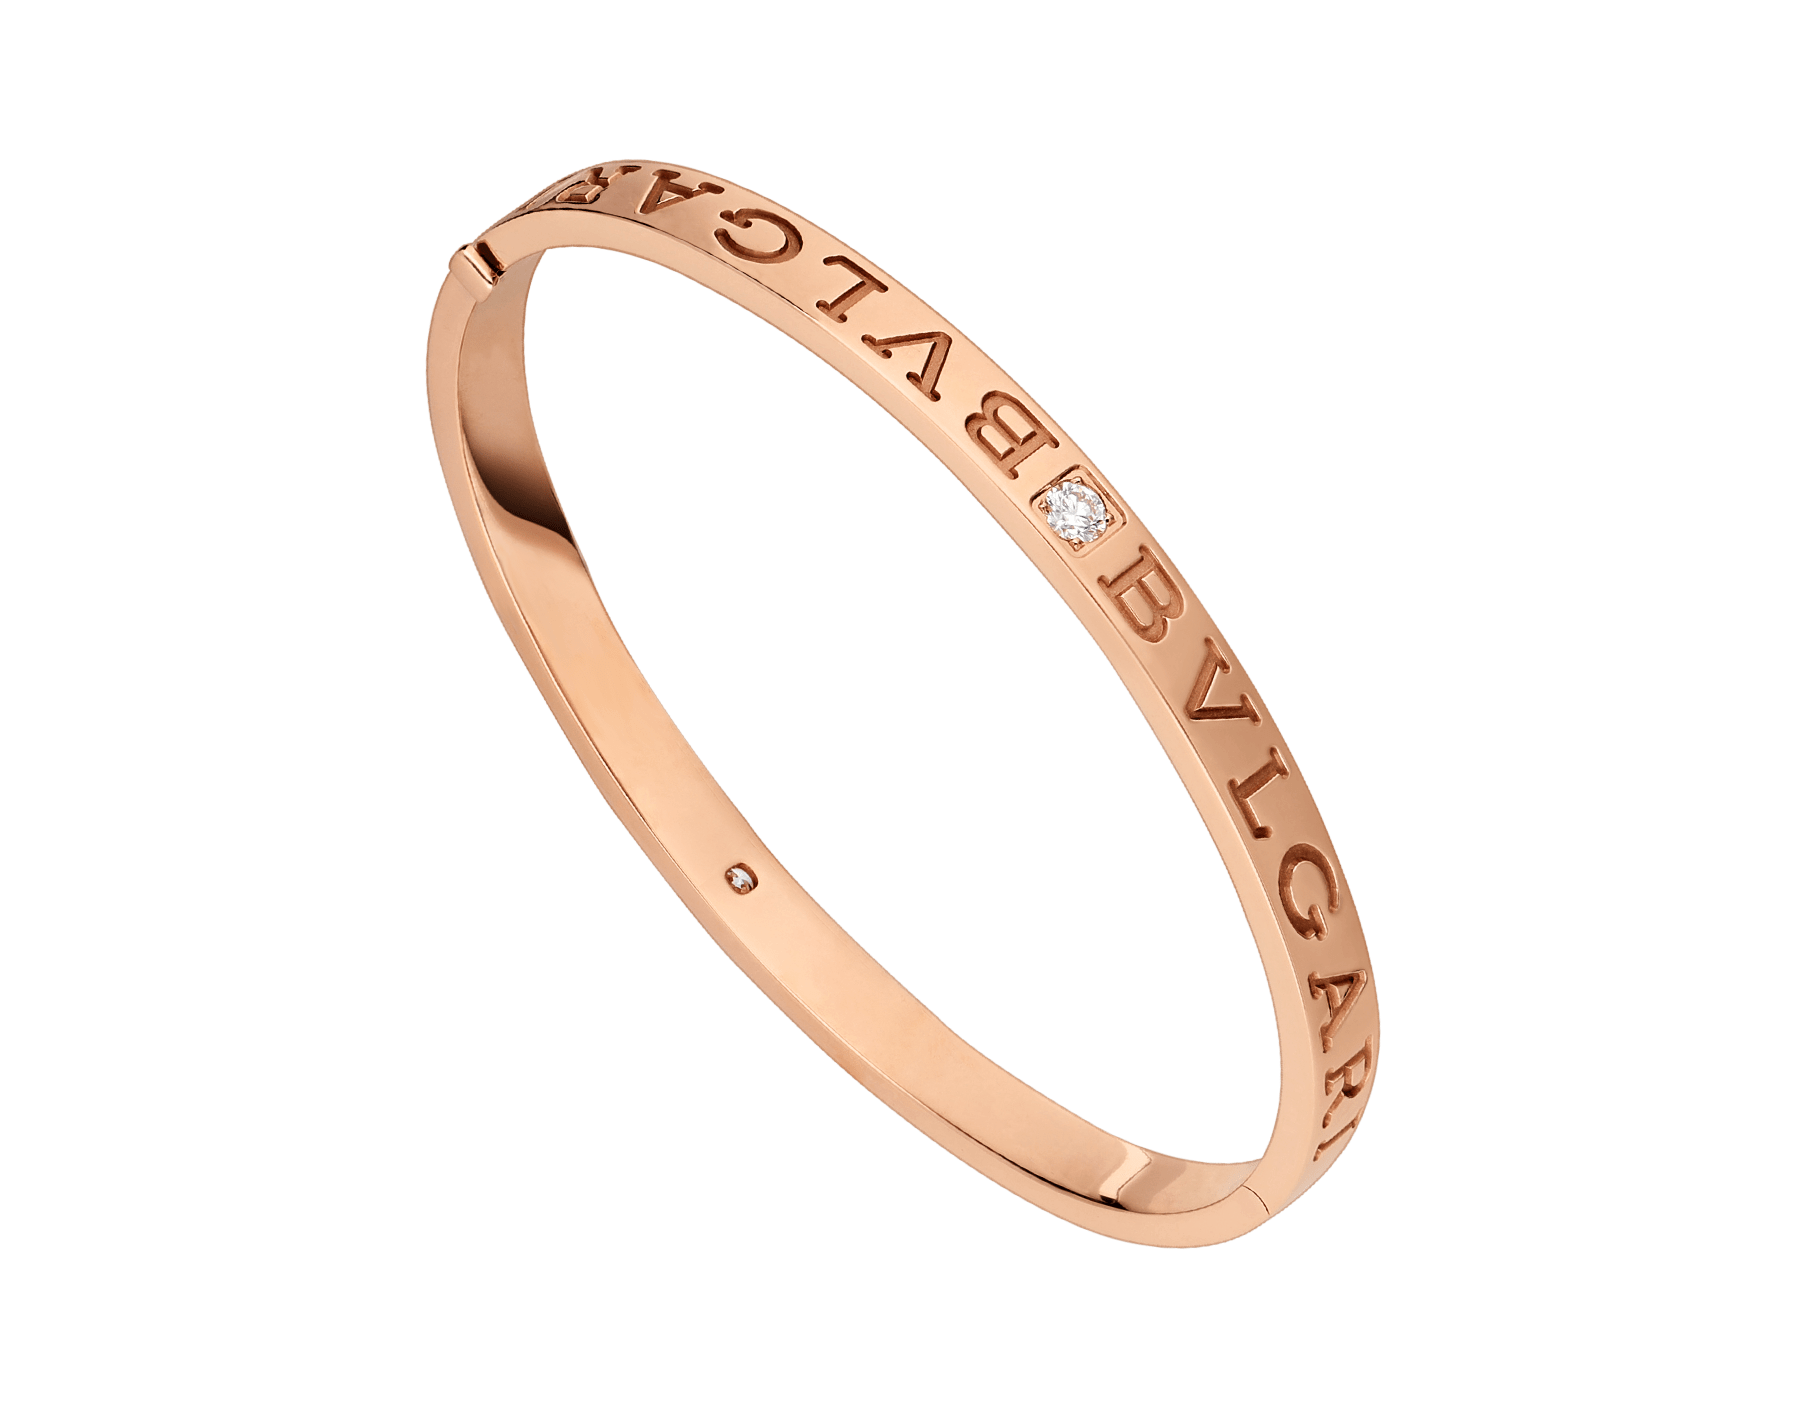 BVLGARI BVLGARI 18 kt rose gold bangle bracelet set with diamonds BR856760 image 1